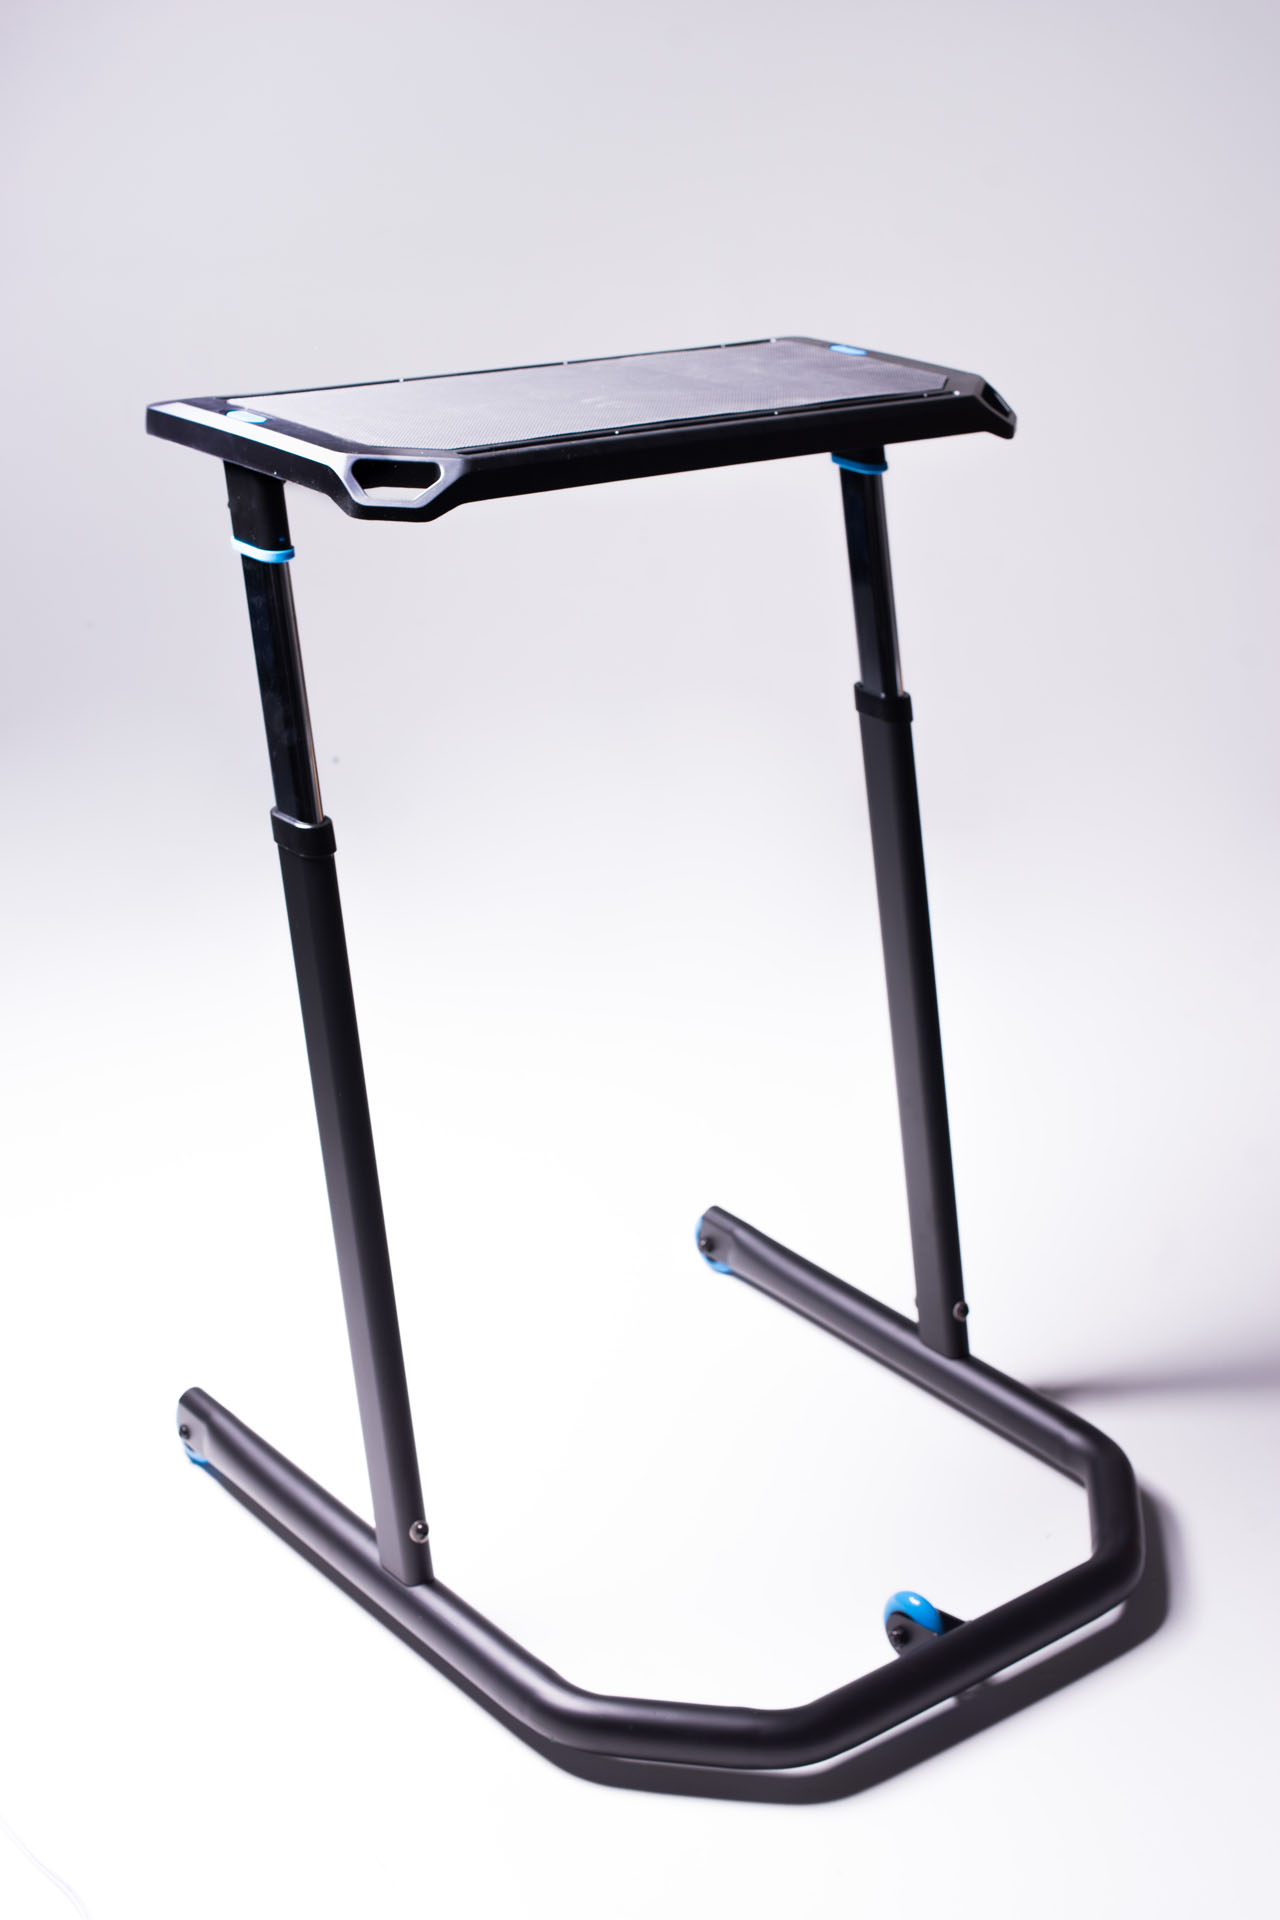 KICKR Indoor Cycling Desk-Picture-18